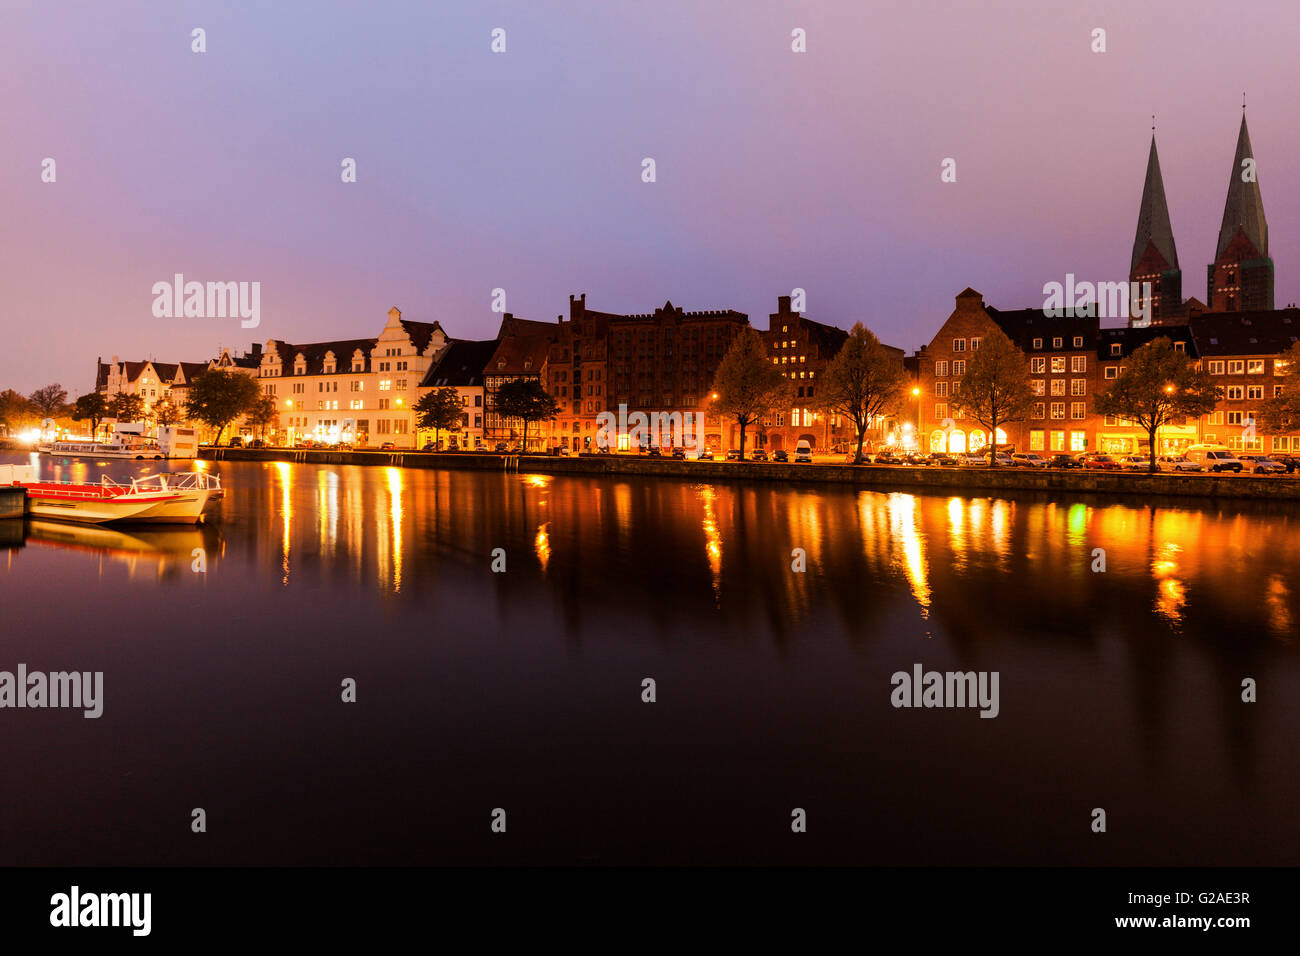 Architecture of Lubeck across Trave River Lubeck, Schleswig-Holstein, Germany - Stock Image